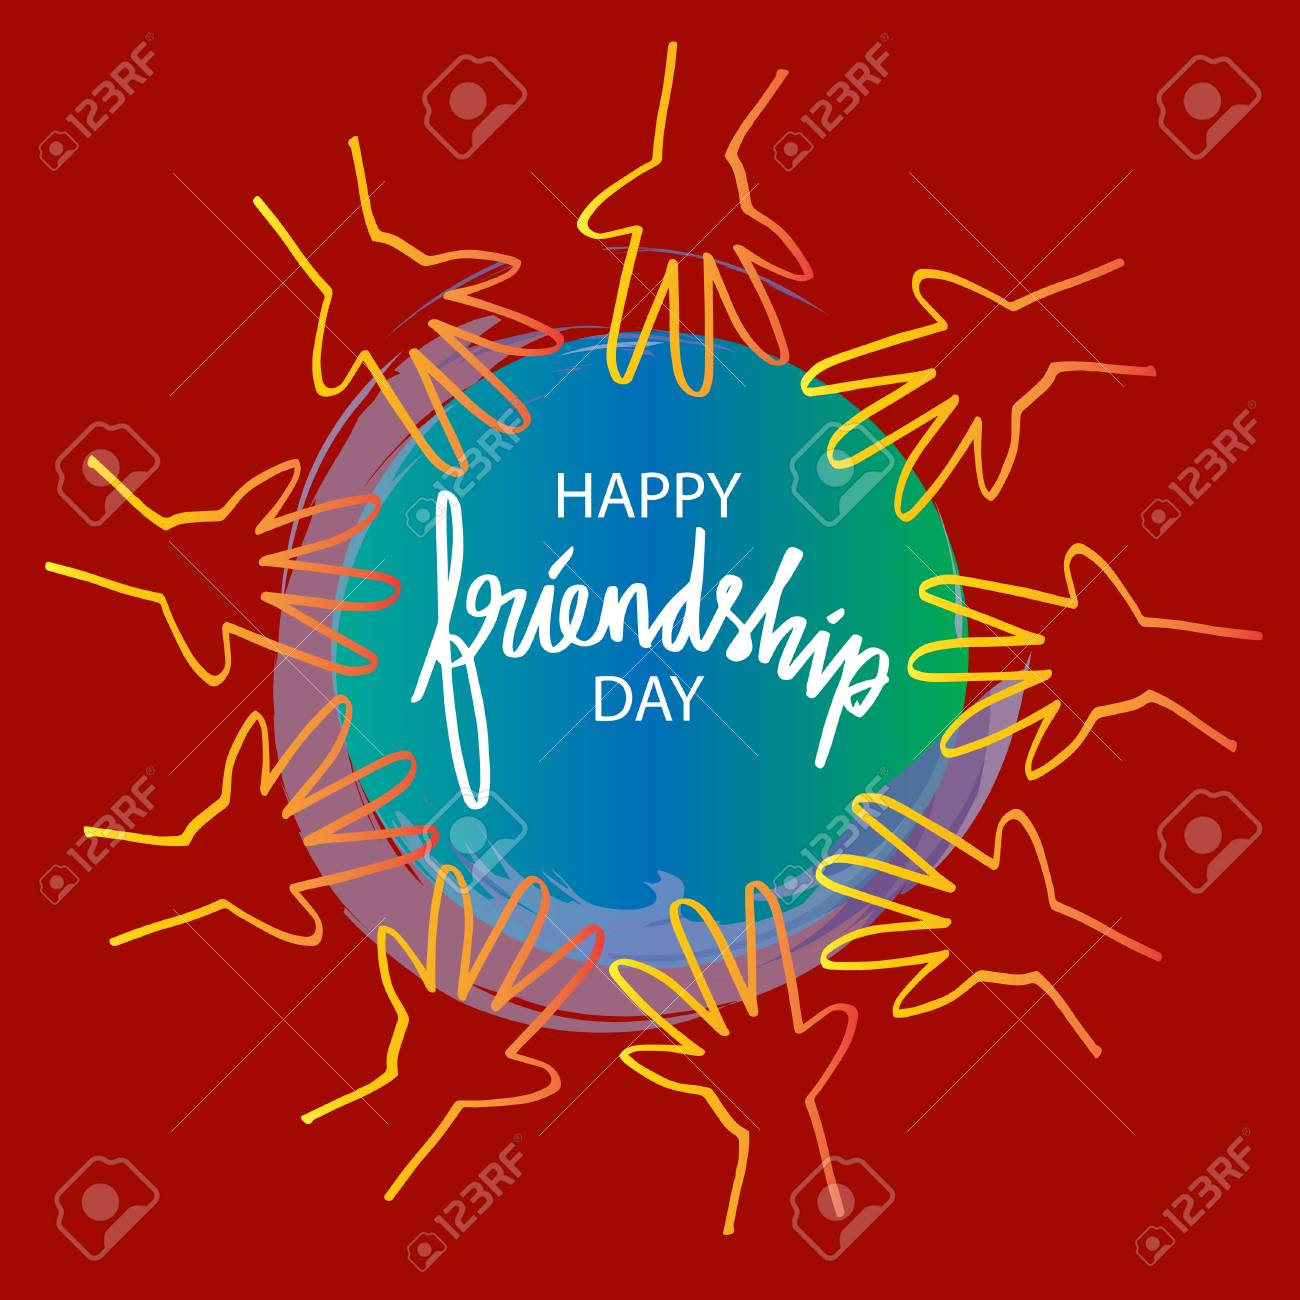 Happy Friendship Day Greeting Card Royalty Free Cliparts Vectors